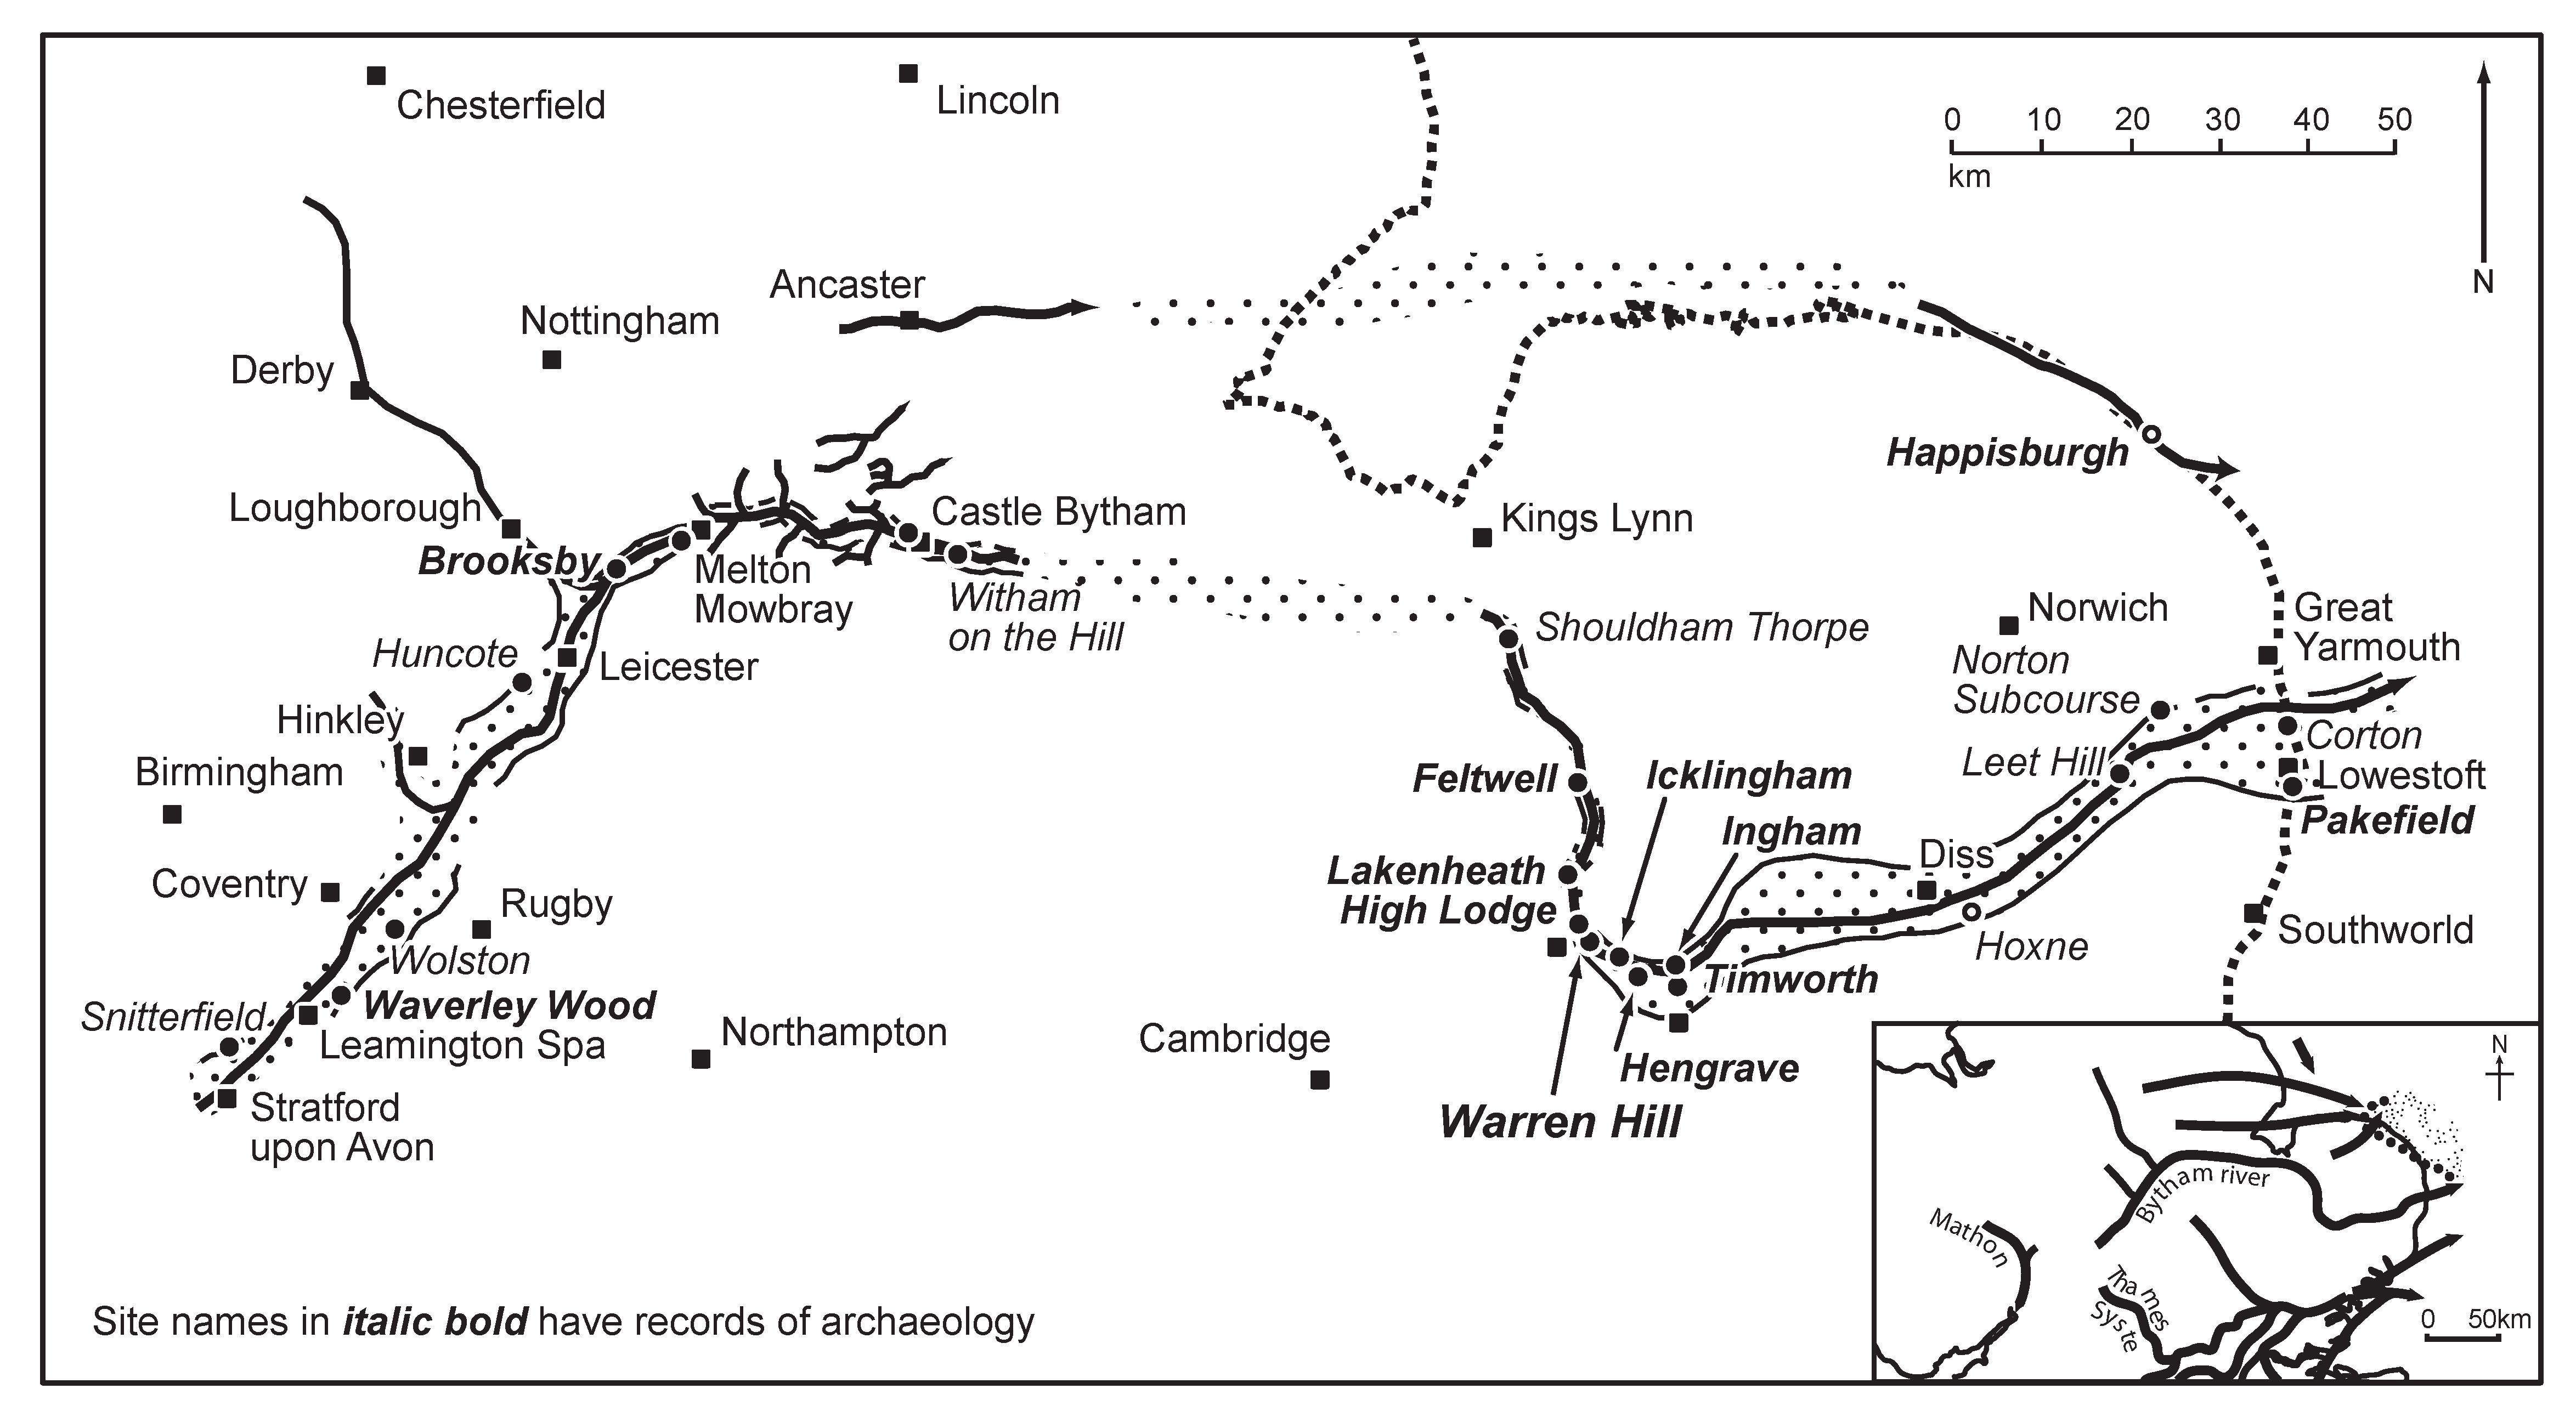 A map of the east of England, showing rivers, settlements and archaeological sites.